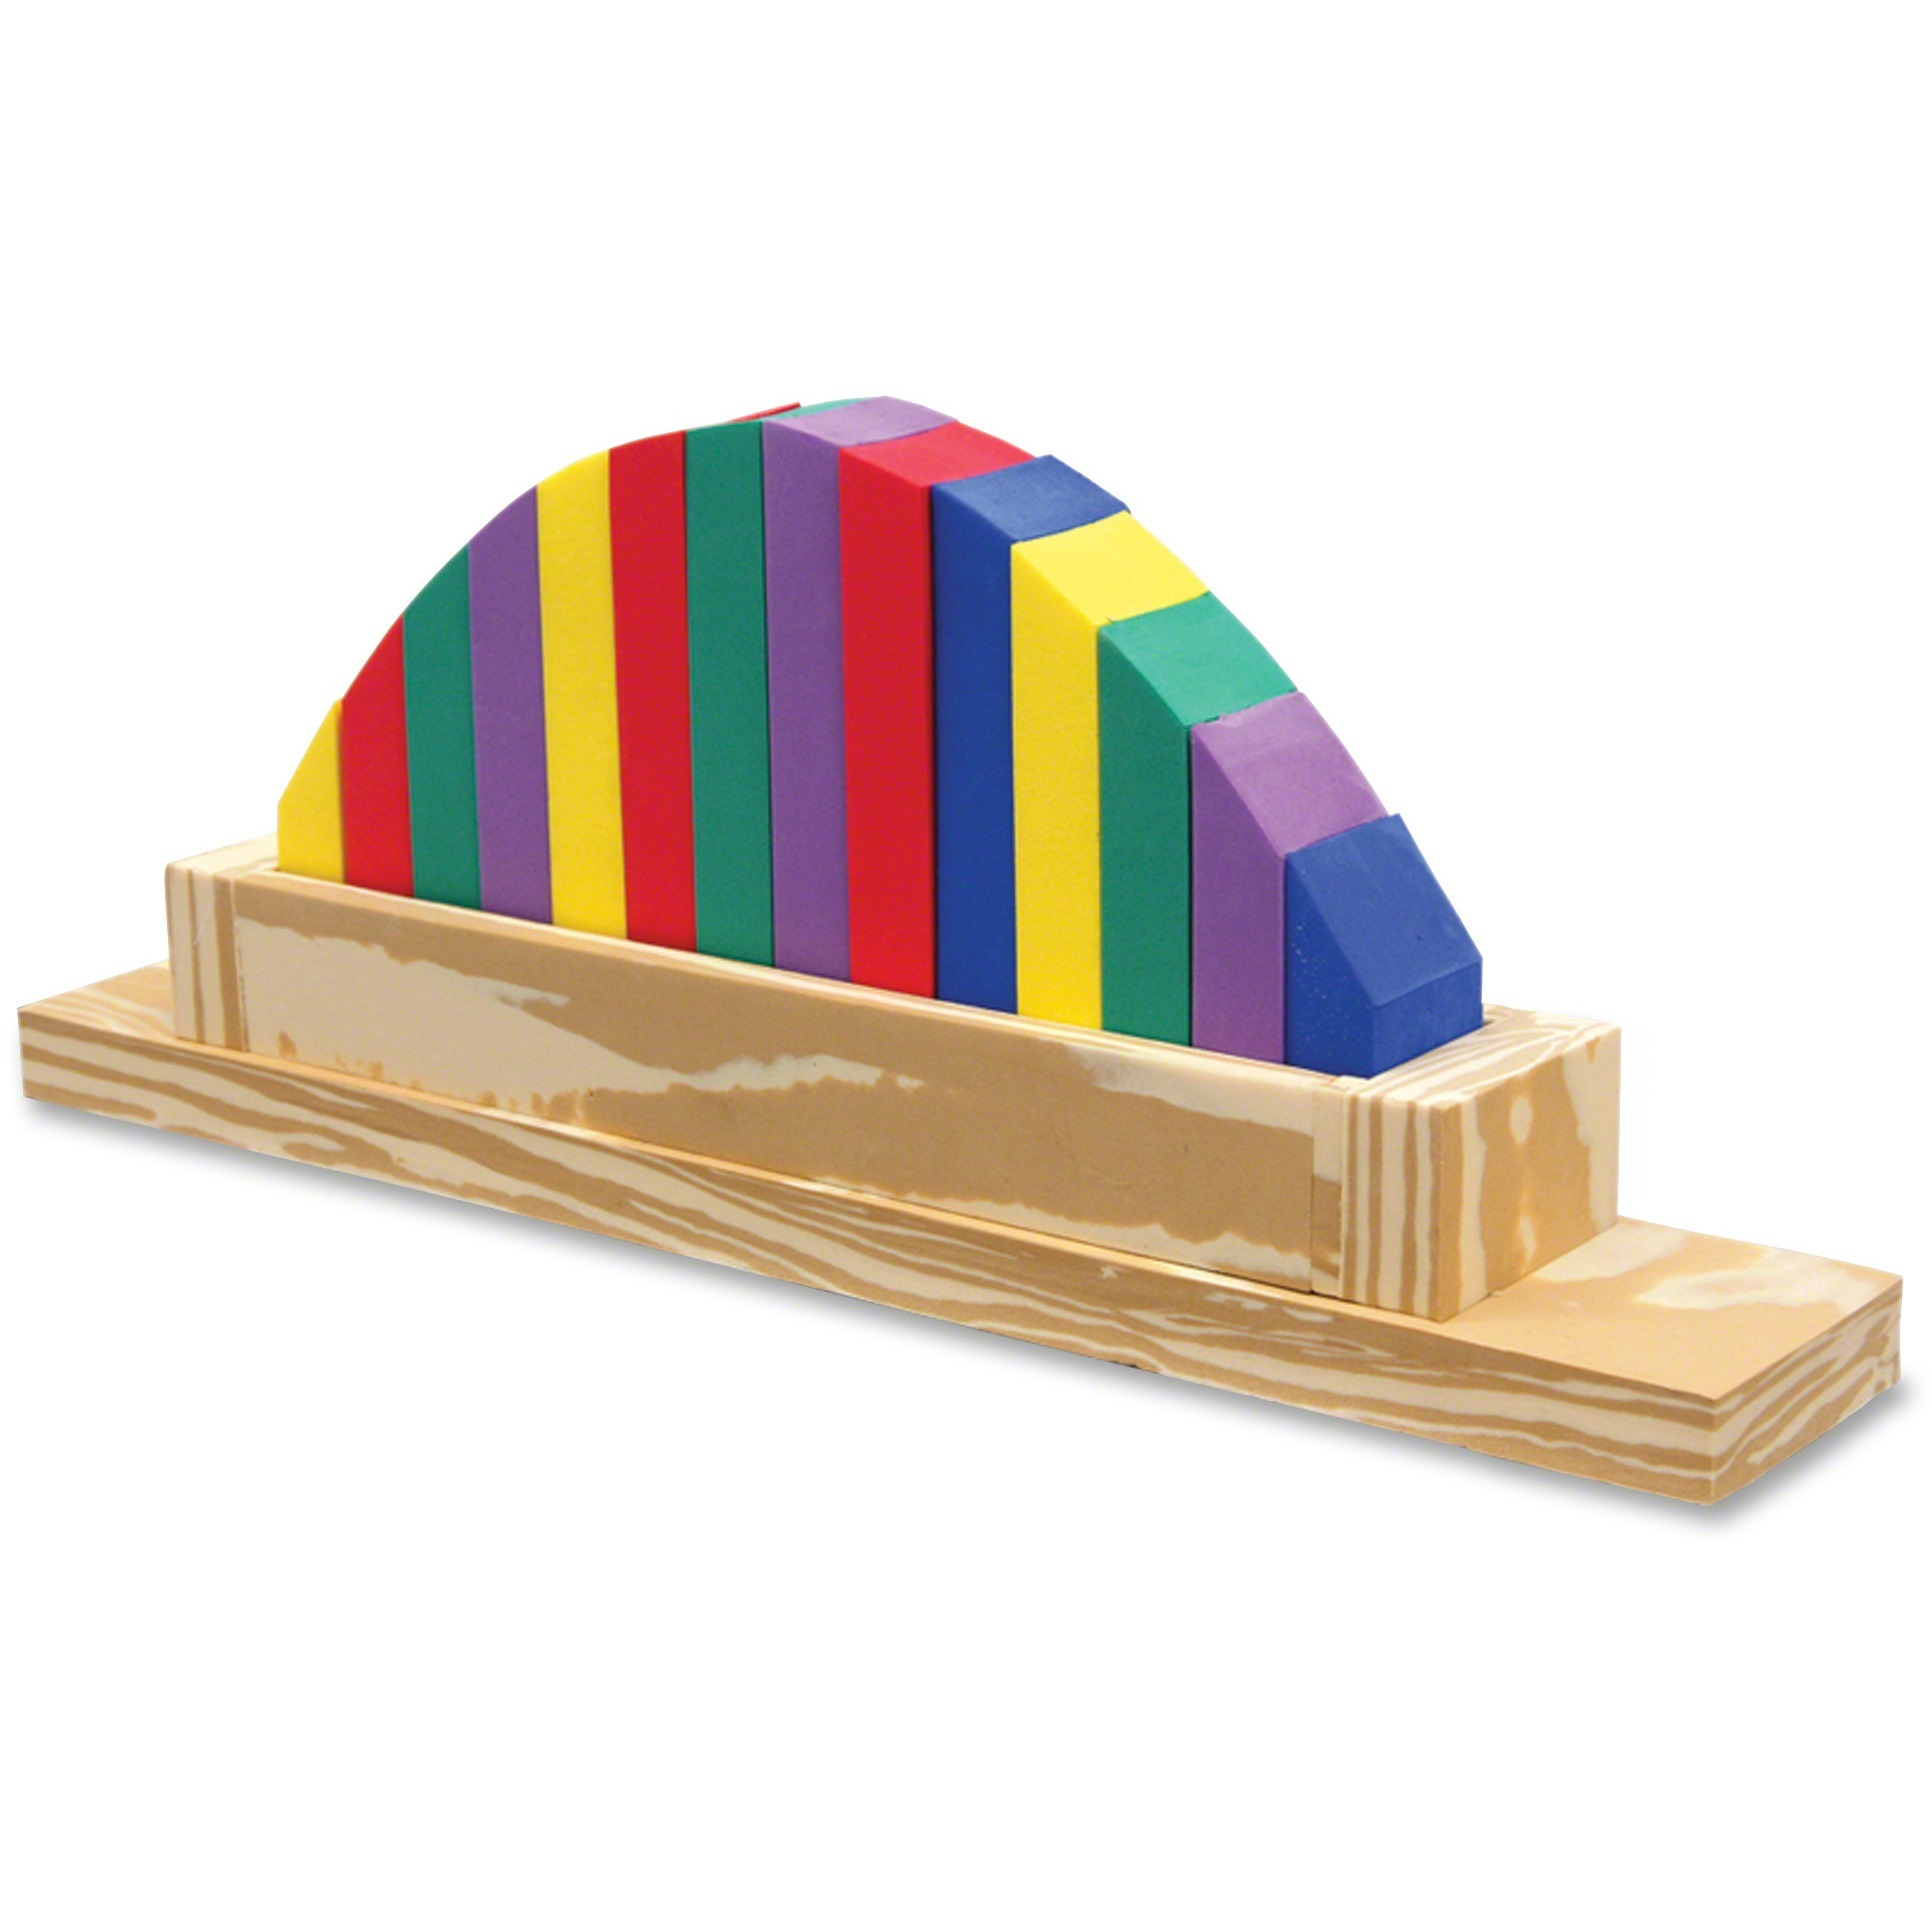 Creativity Street, CKC3862, Half Moon Sorter, 1 Each, Assorted